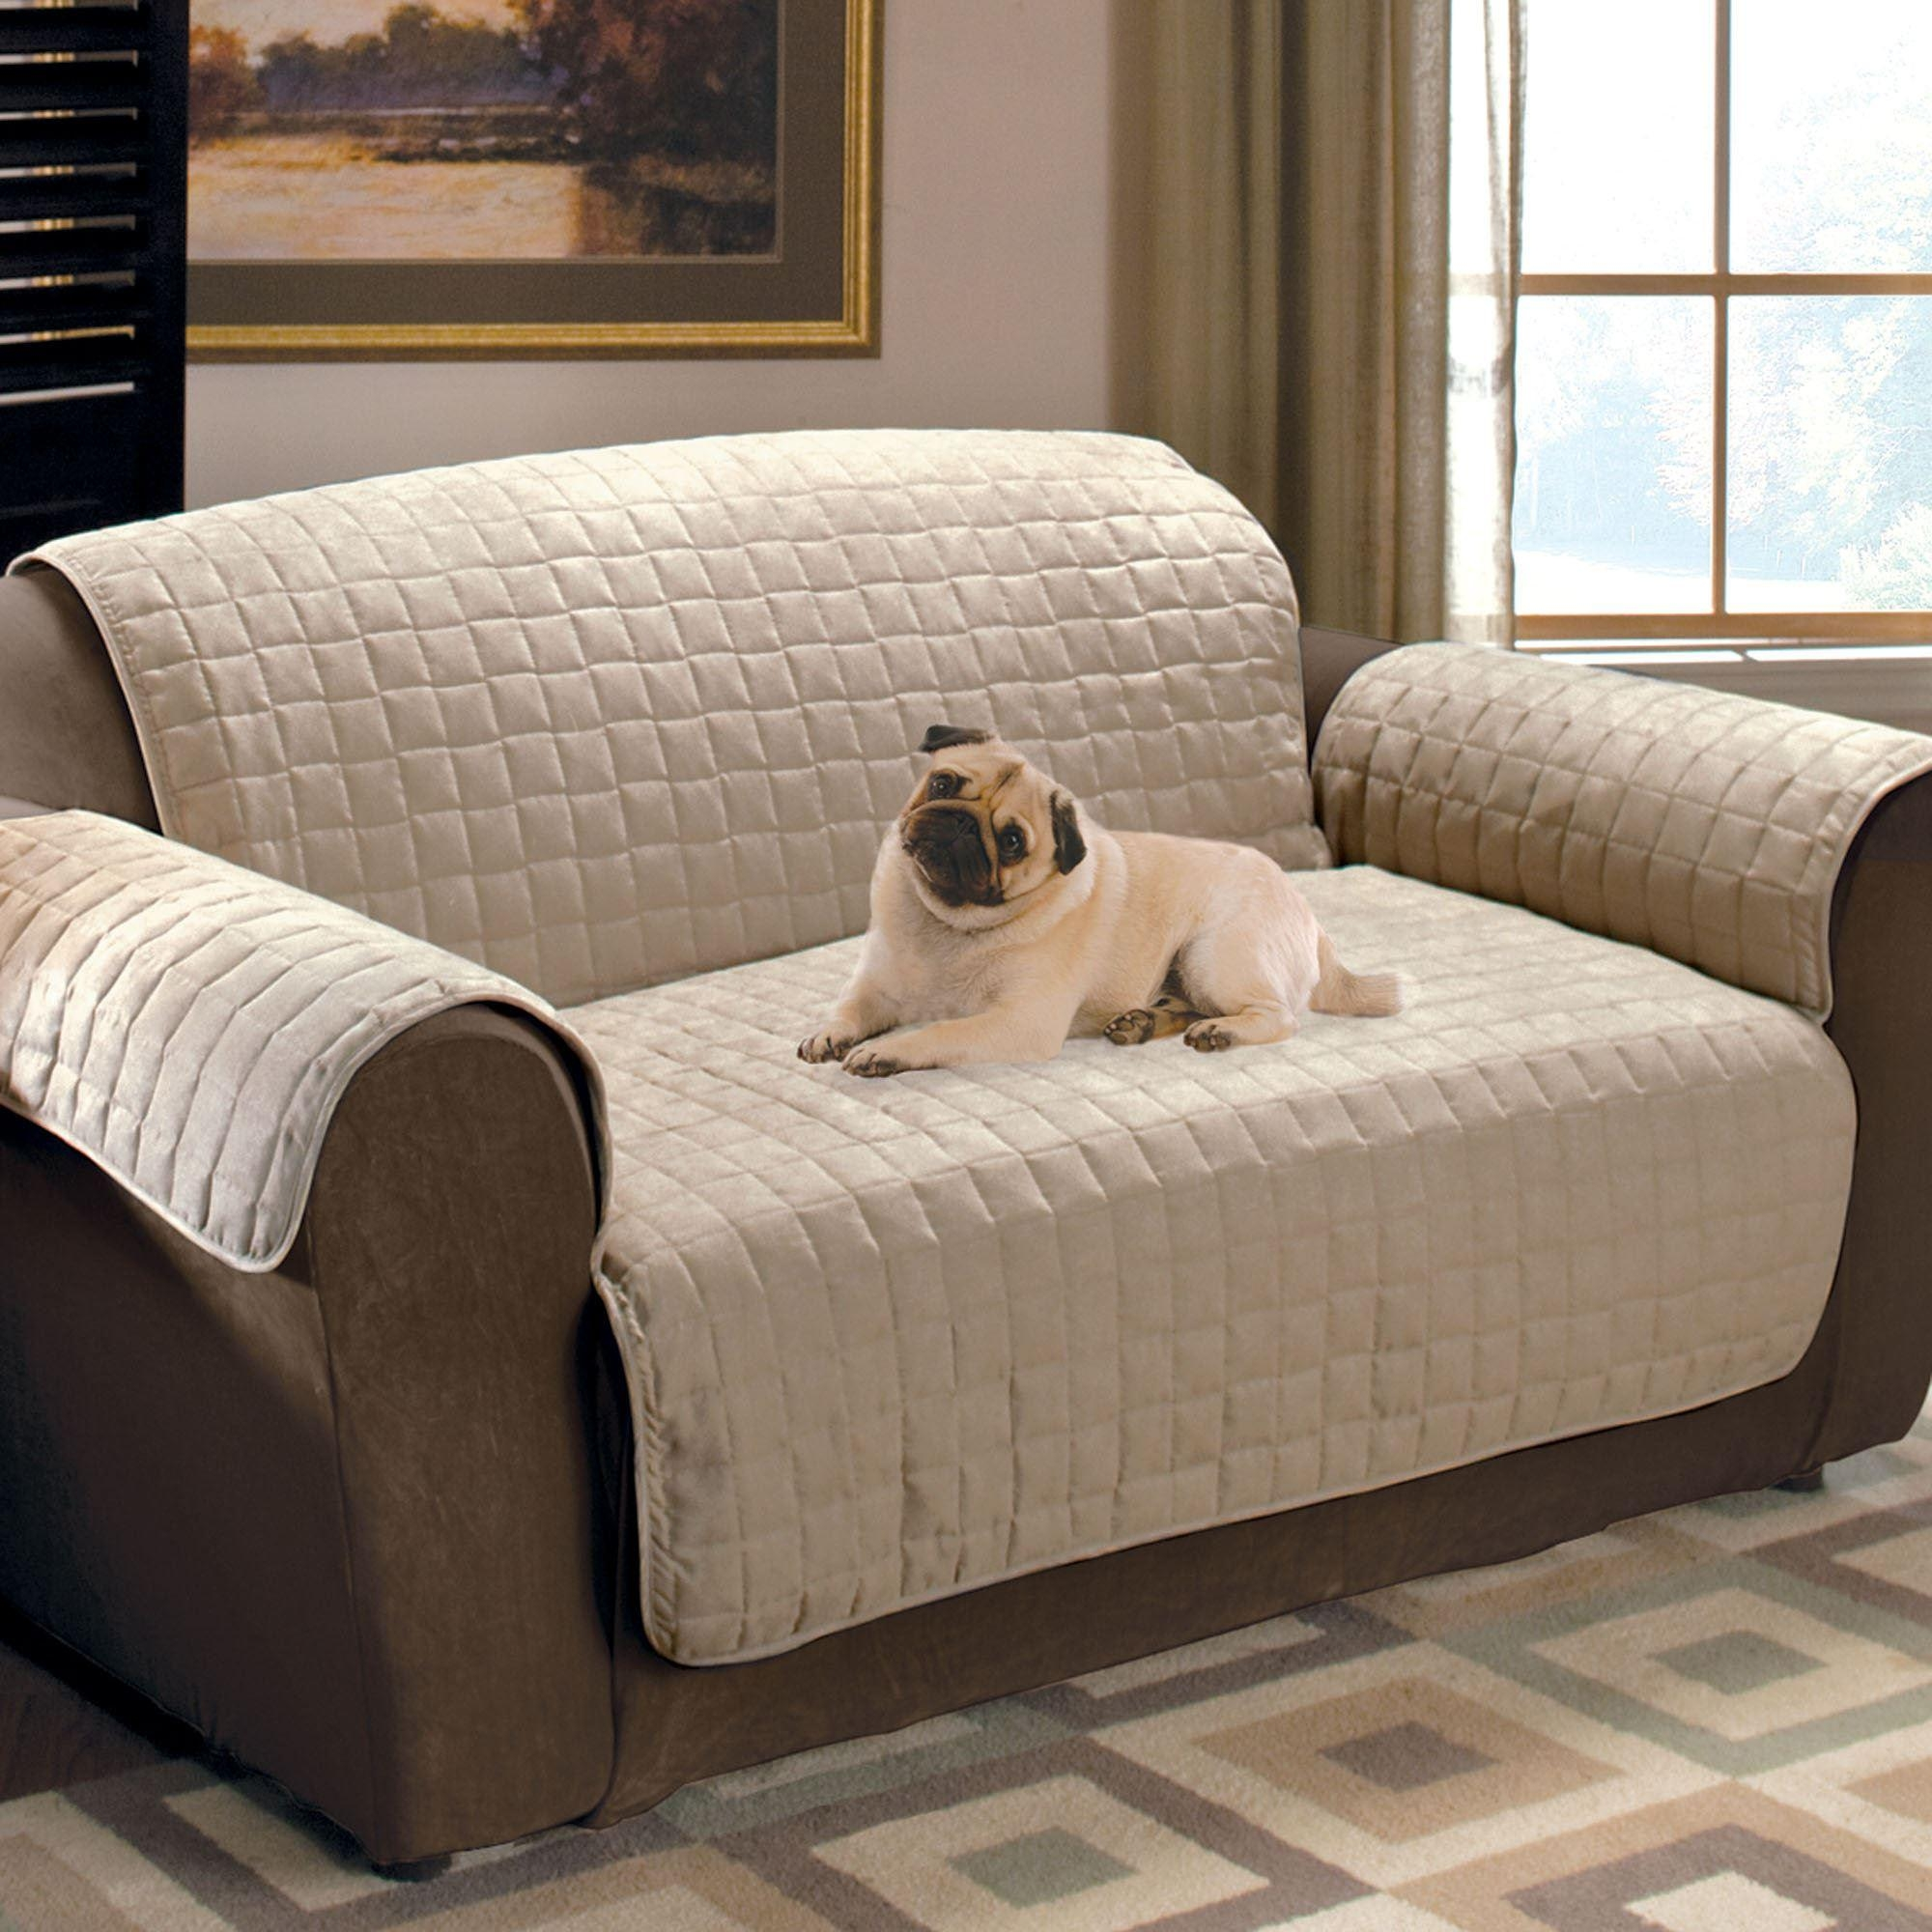 Sofa Covers Best 25+ Sofa Covers Ideas On Pinterest | Slipcovers Pertaining To Pet Proof Sofa Covers (Image 13 of 20)